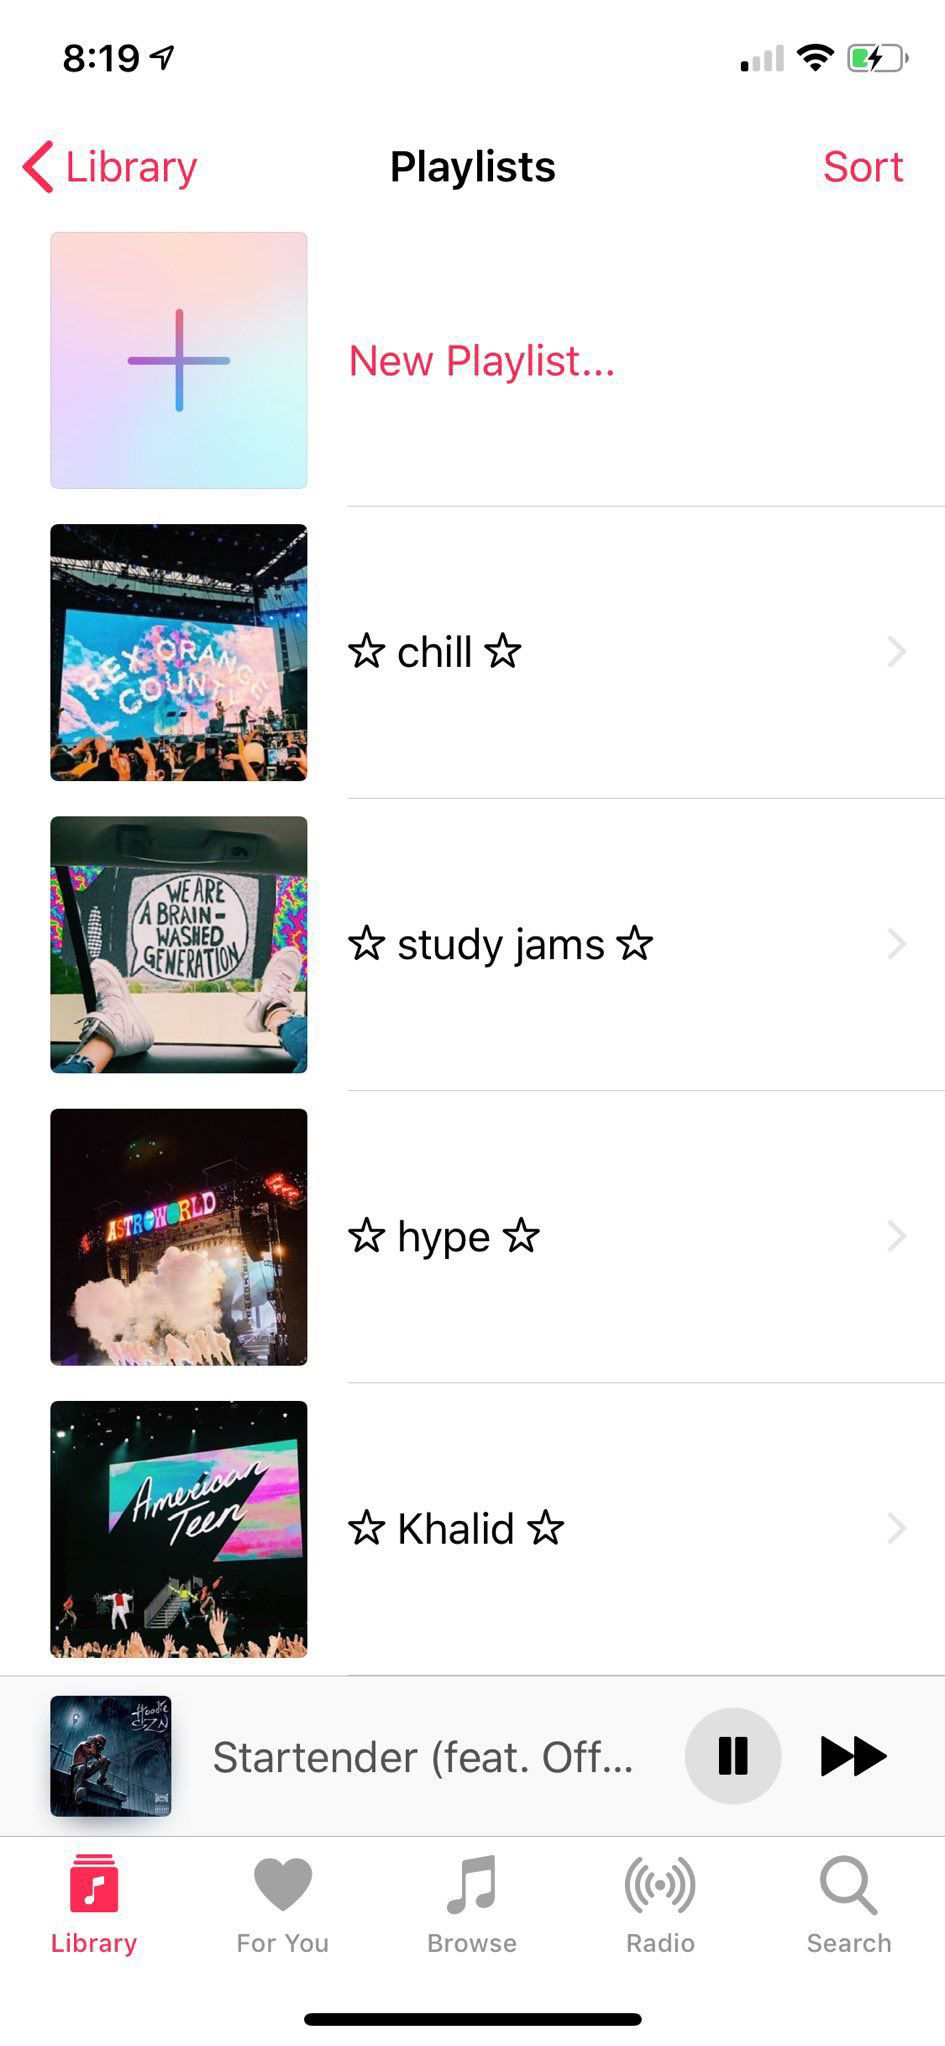 My Playlist Playlist Playlistcovers Music Hype Chill Studymusic Aesthetic Vsco Vscocam Vscoedit With Images Song Playlist Music Mood Music Songs